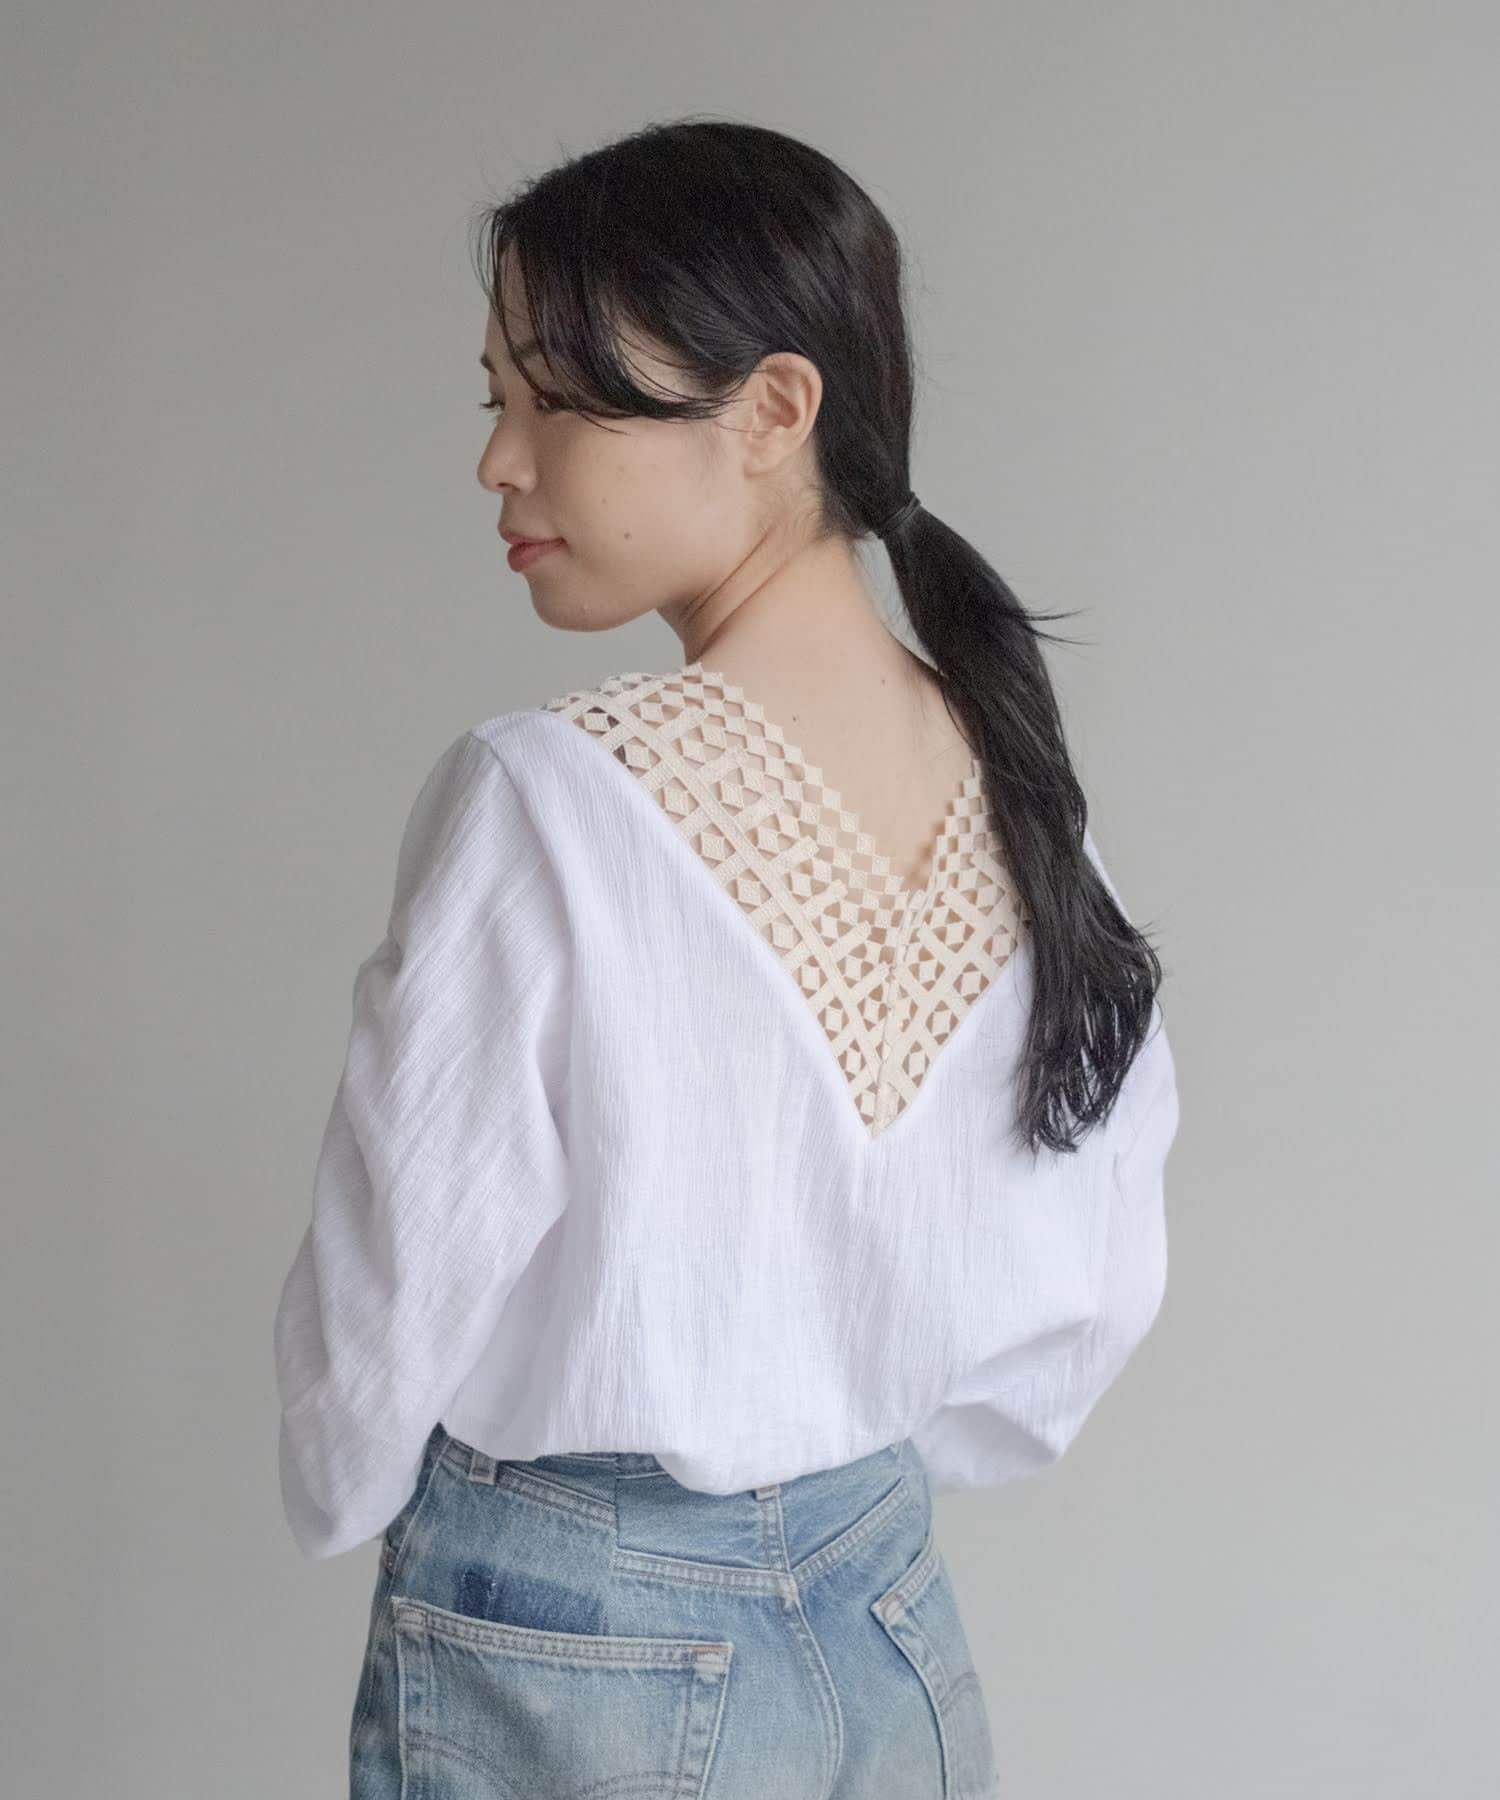 Kastane(カスタネ) 【 ONEME 】 Back lace blouse